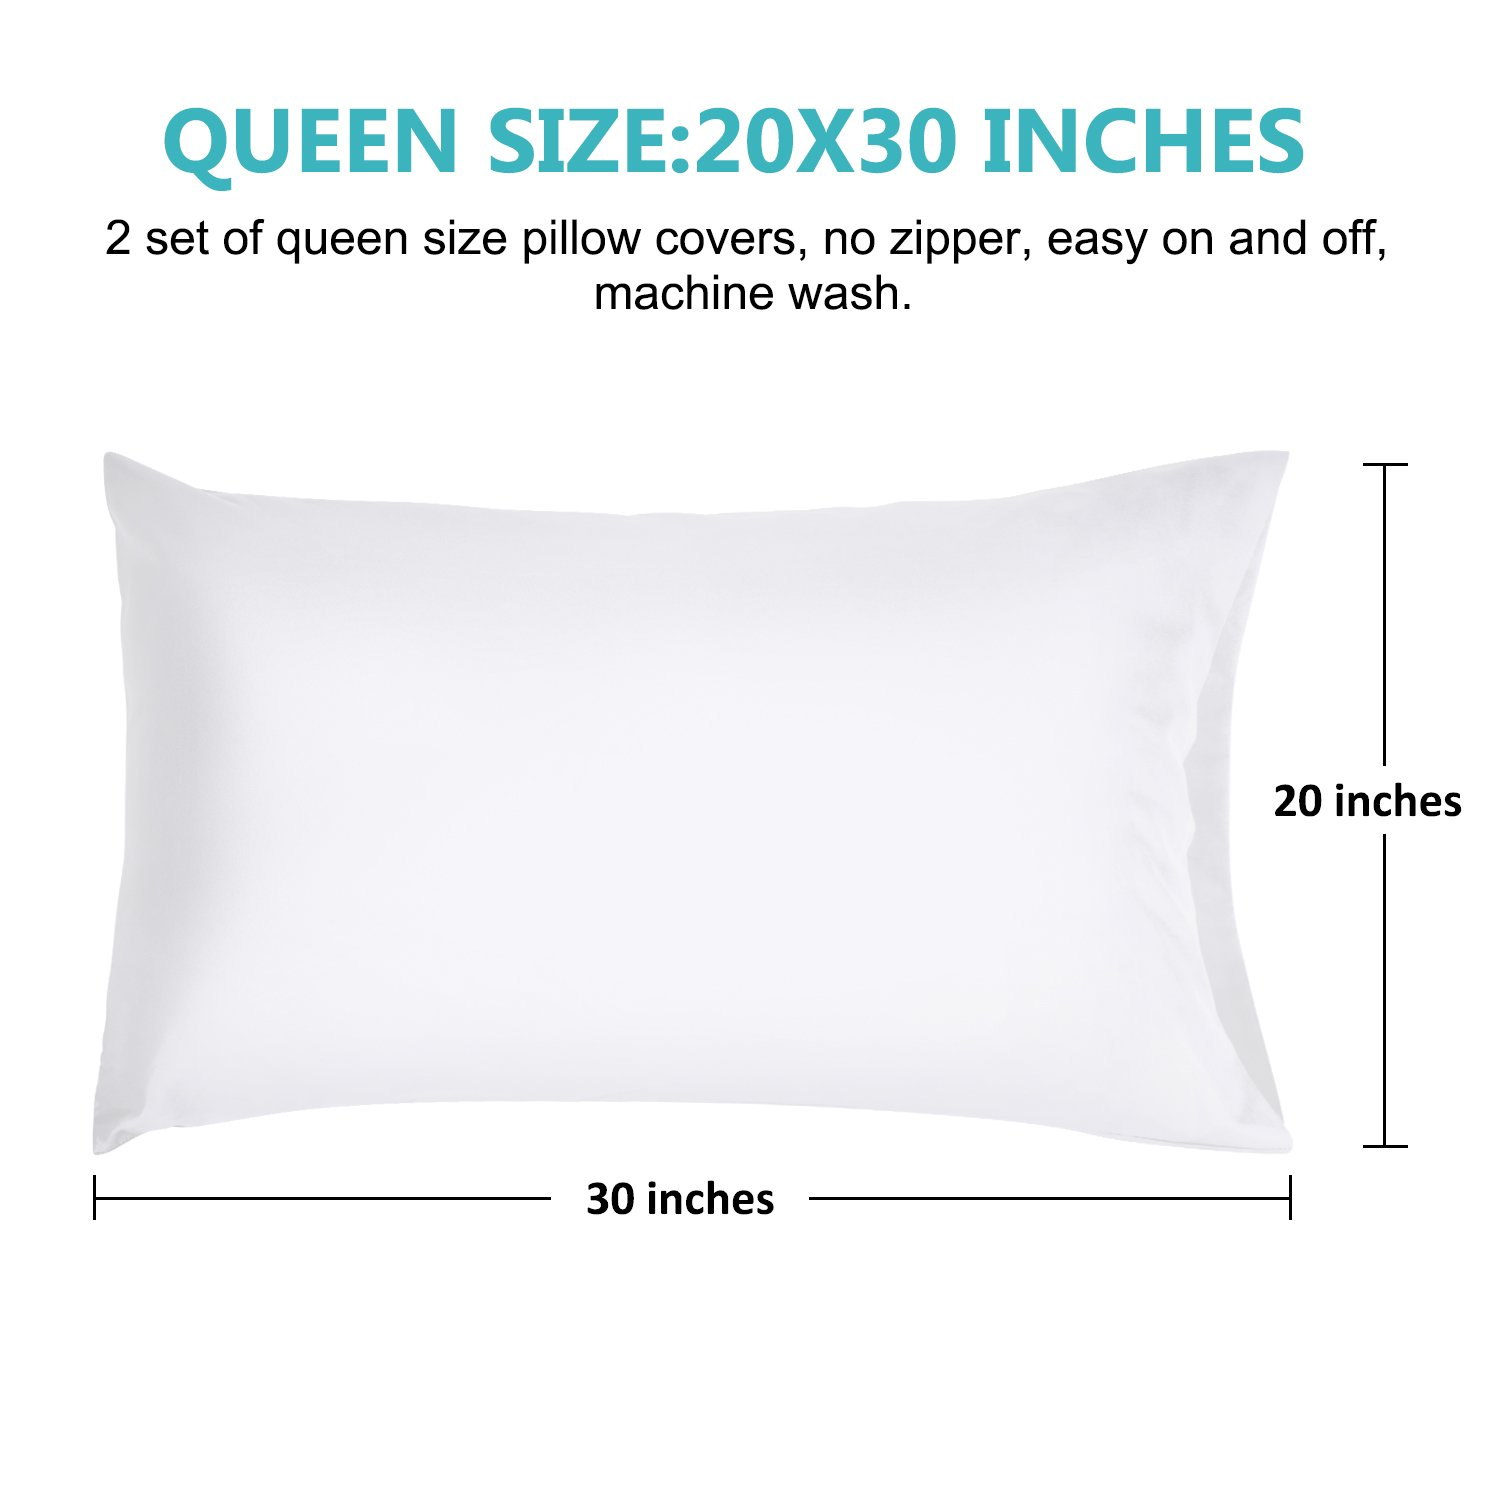 Benewell 2 Queen Size Pillow Cases 100% Cotton, Hypoallergenic Pillow Cover, Envelope Closure End, 20x30 Inch (Set of 2, White)